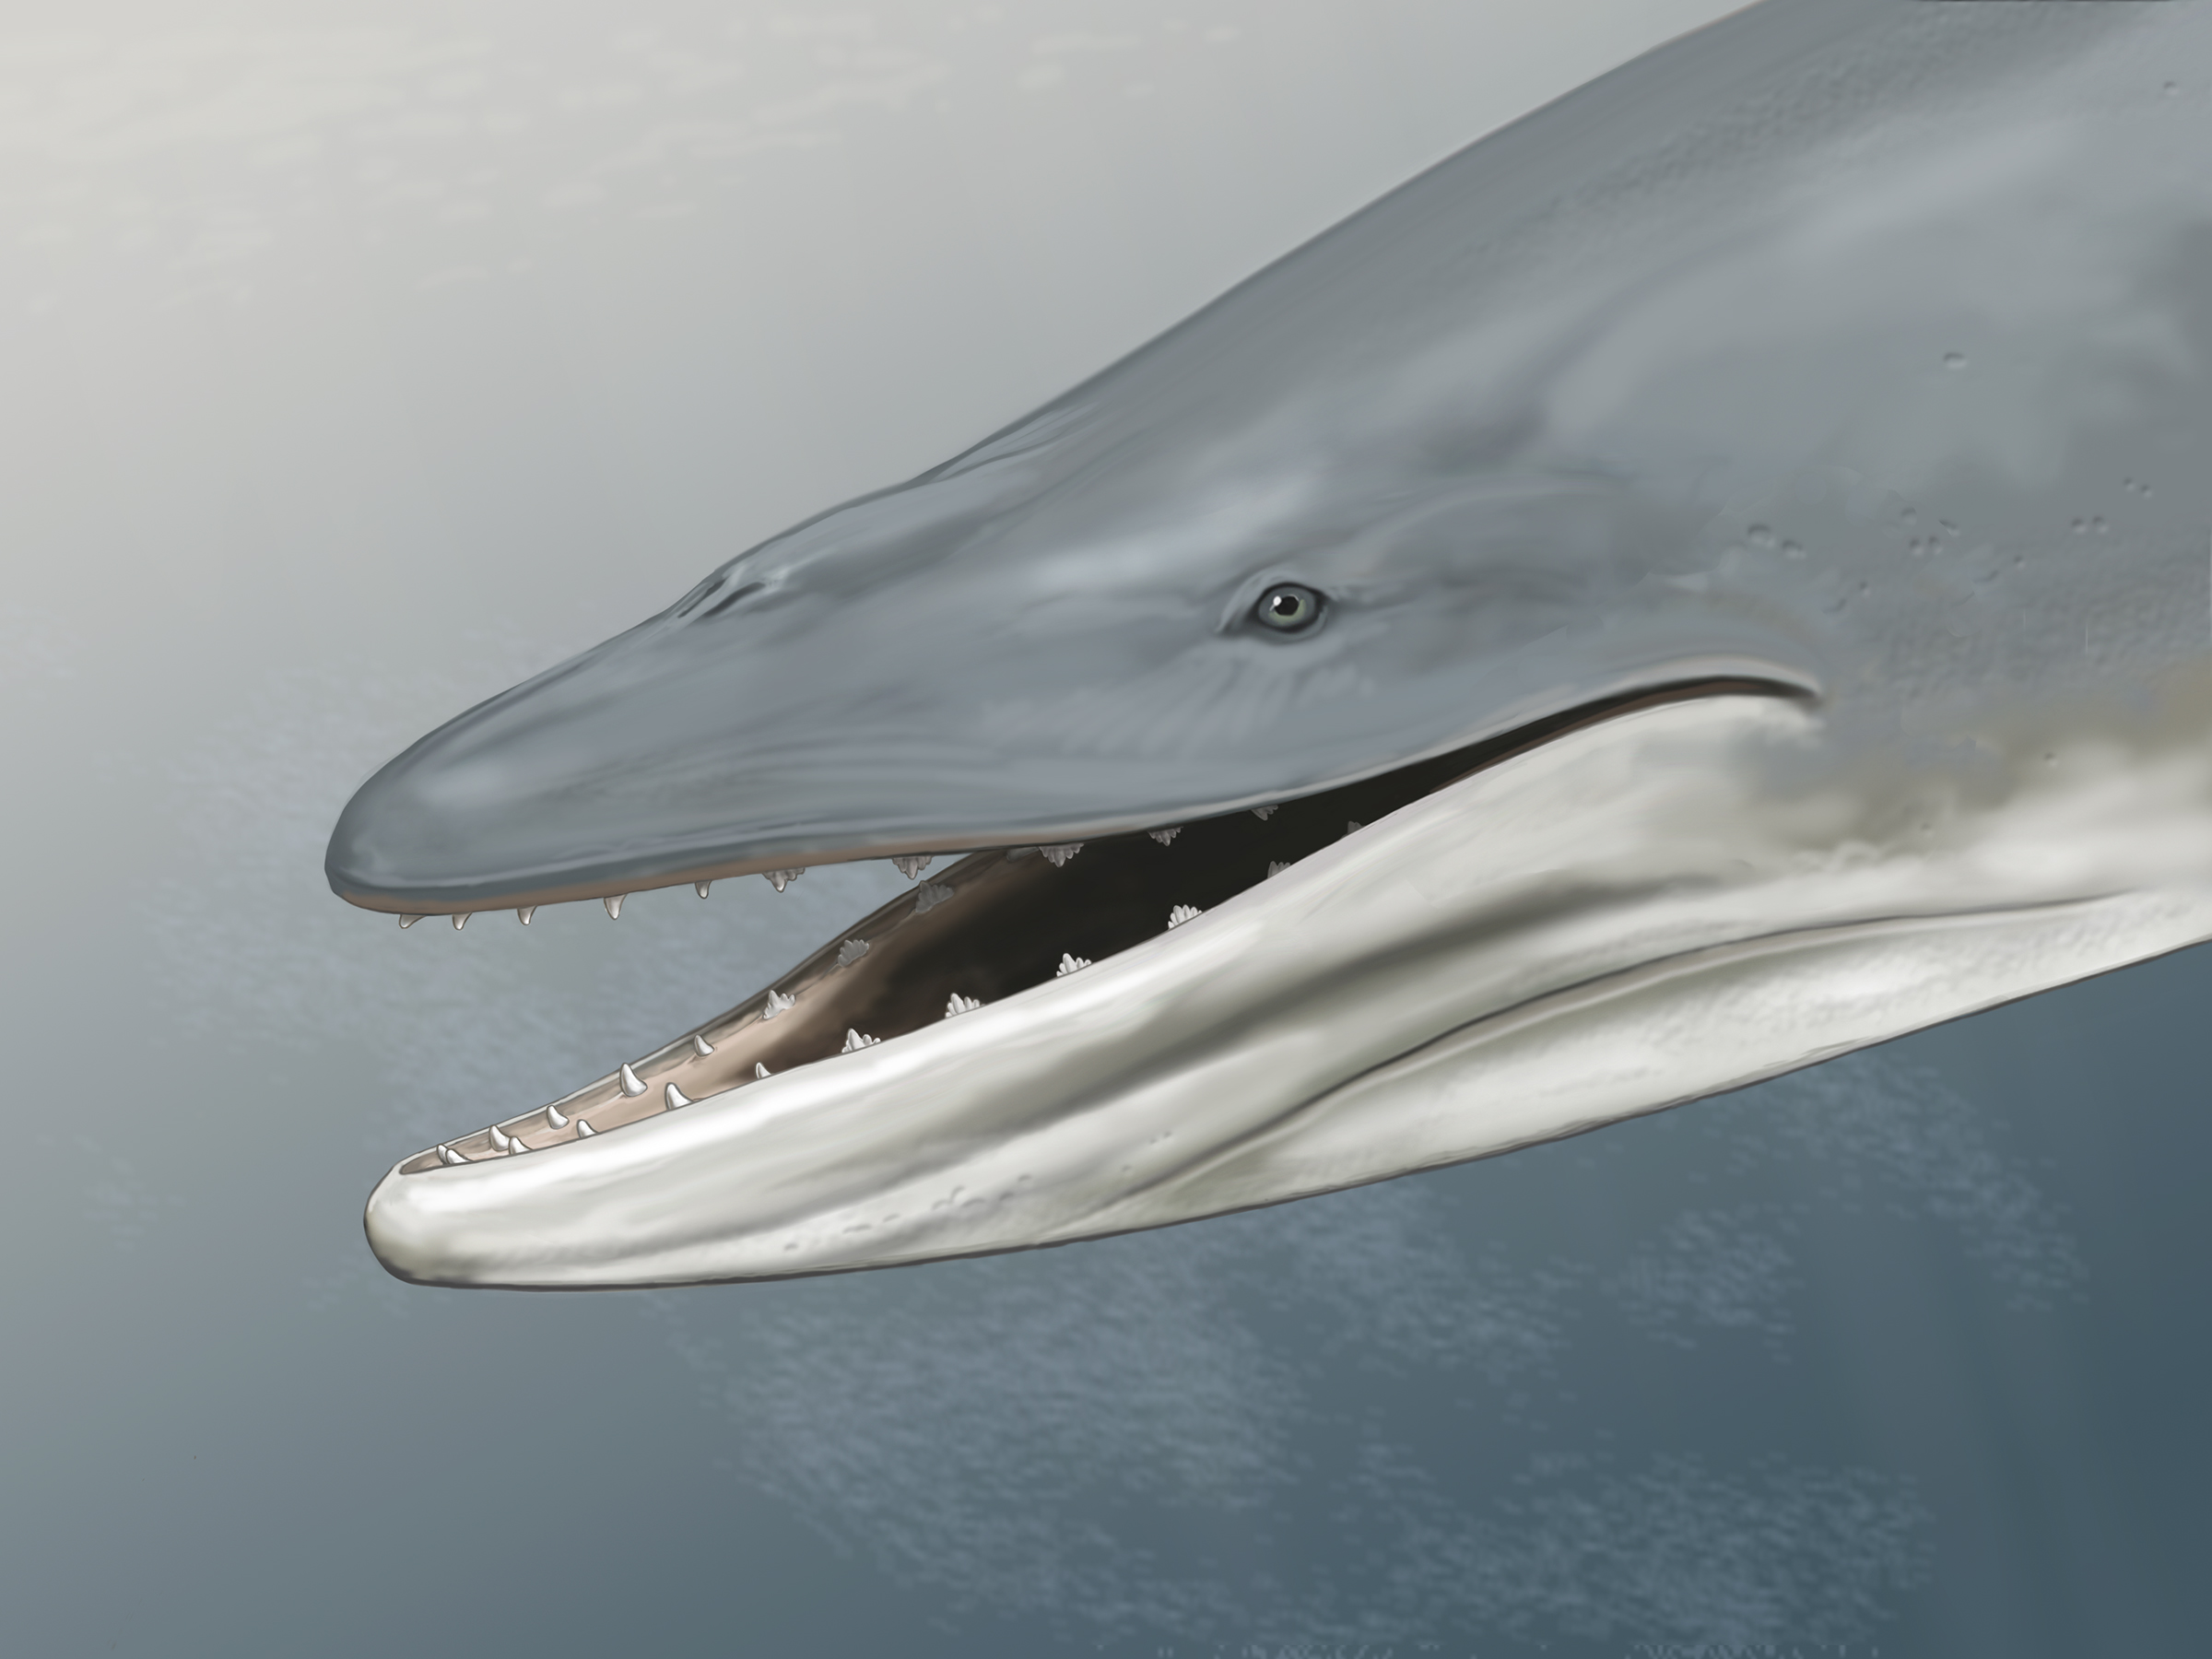 The remains of the second oldest baleen whale ever found has revealed that early whales may have not actually had baleen. The 34-million-year-old whale skull from Antarctica has well-developed gums and teeth.